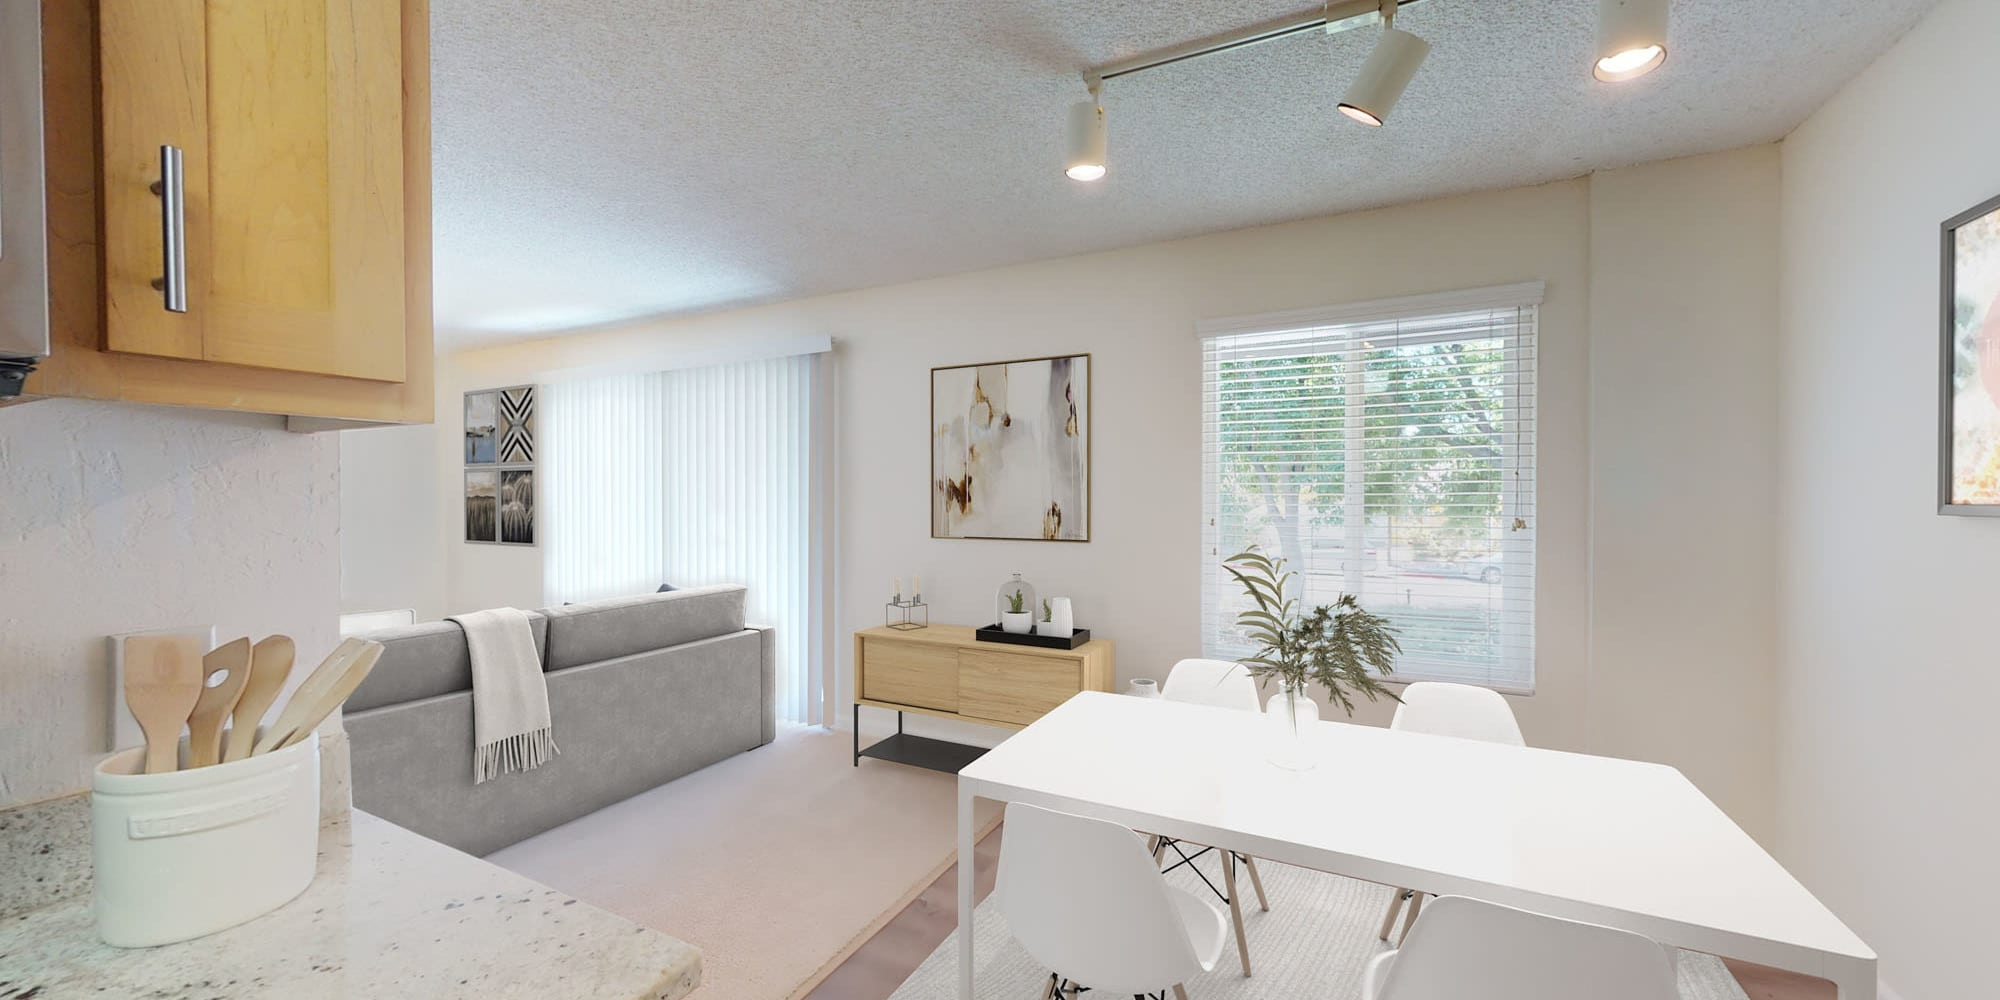 Dining and living areas in an open-concept model home at Pleasanton Glen Apartment Homes in Pleasanton, California